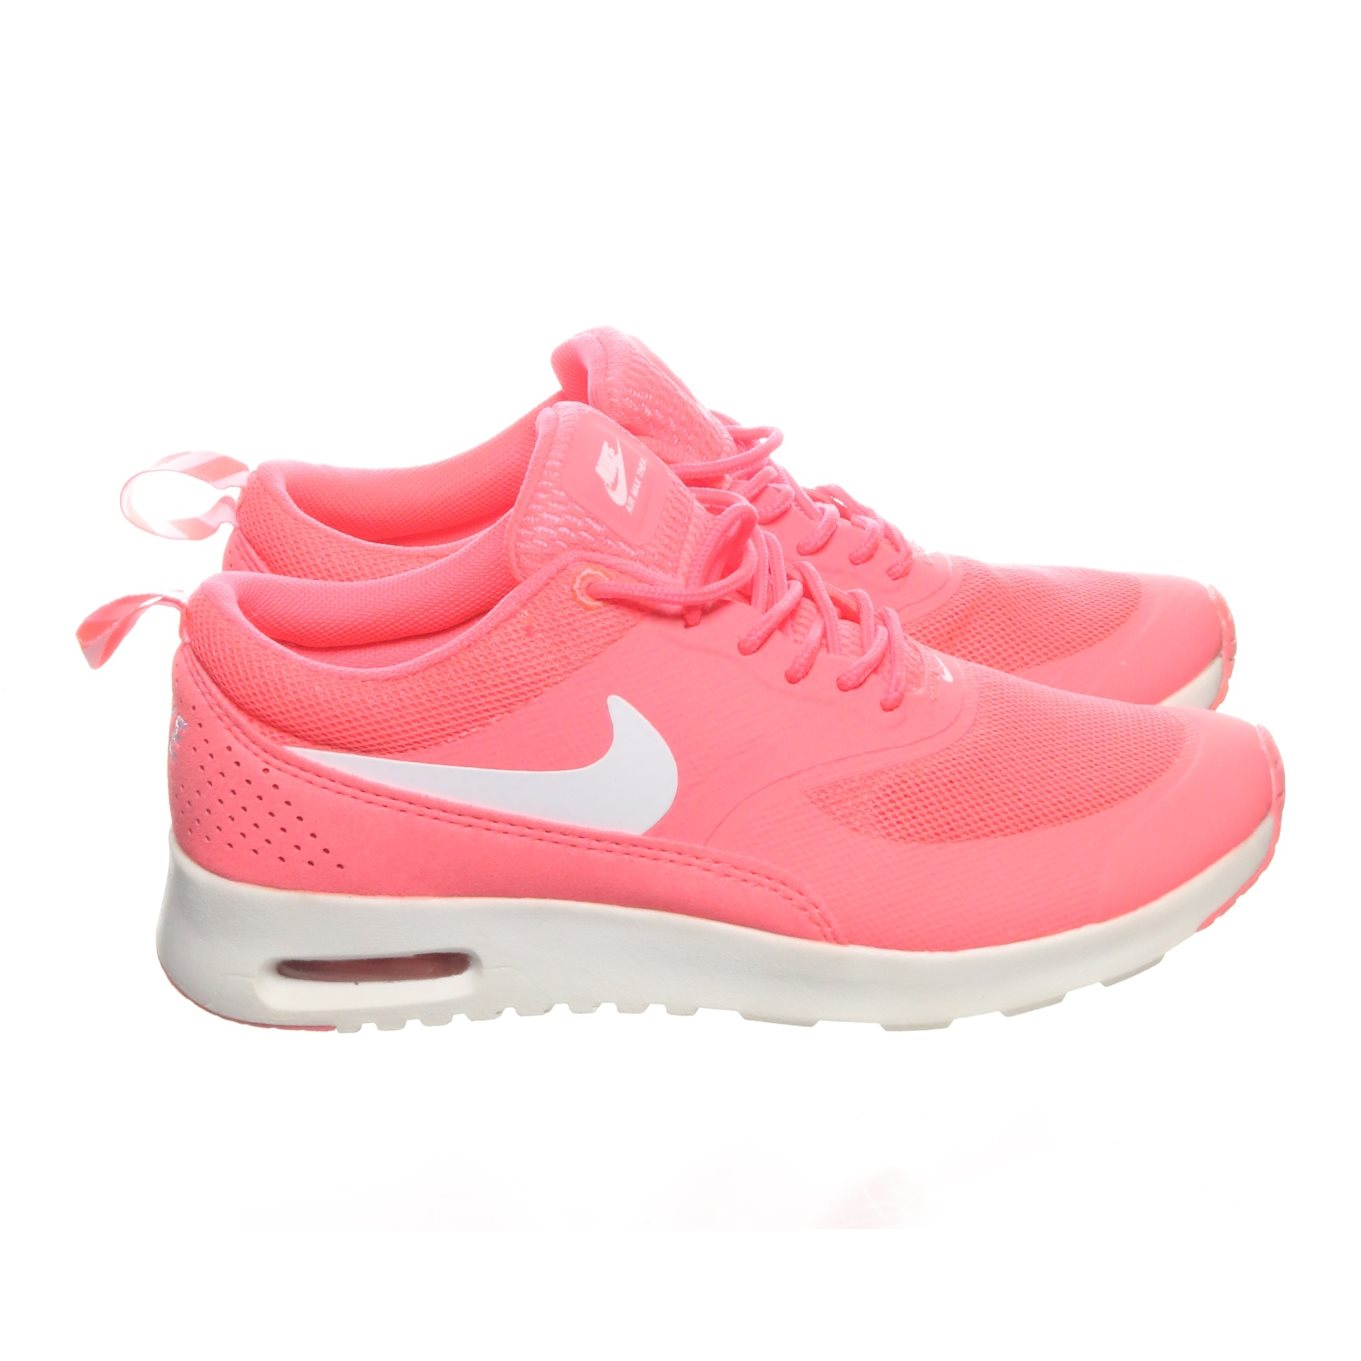 new products 6db13 b944c Nike air max, Sneakers, Strl  38, Thea, Rosa